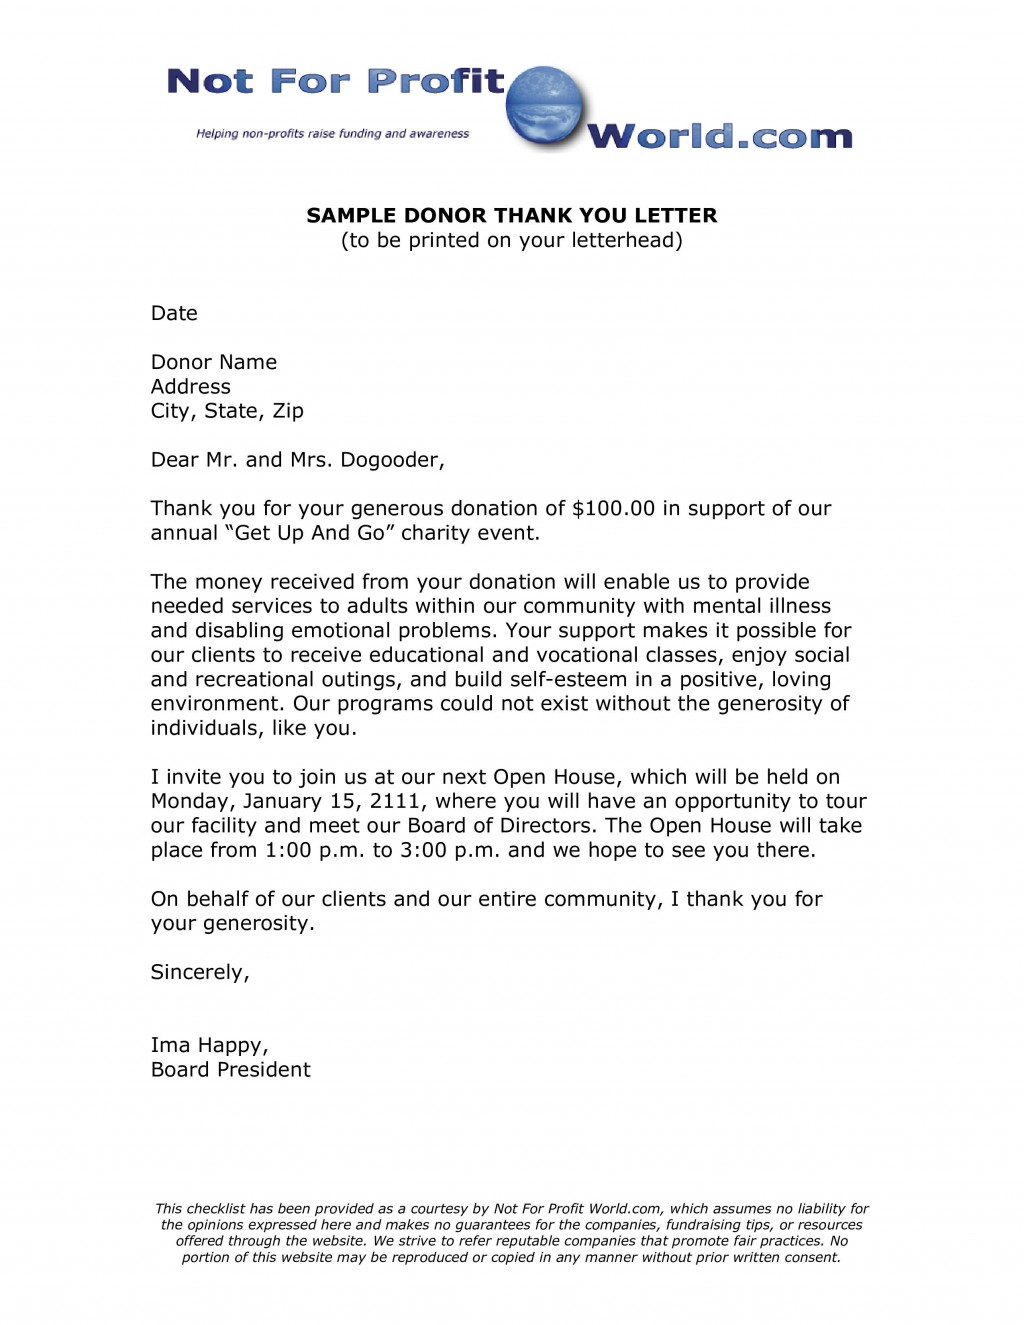 002 Incredible Donor Thank You Letter Template Sample  Donation For Church CharitableLarge